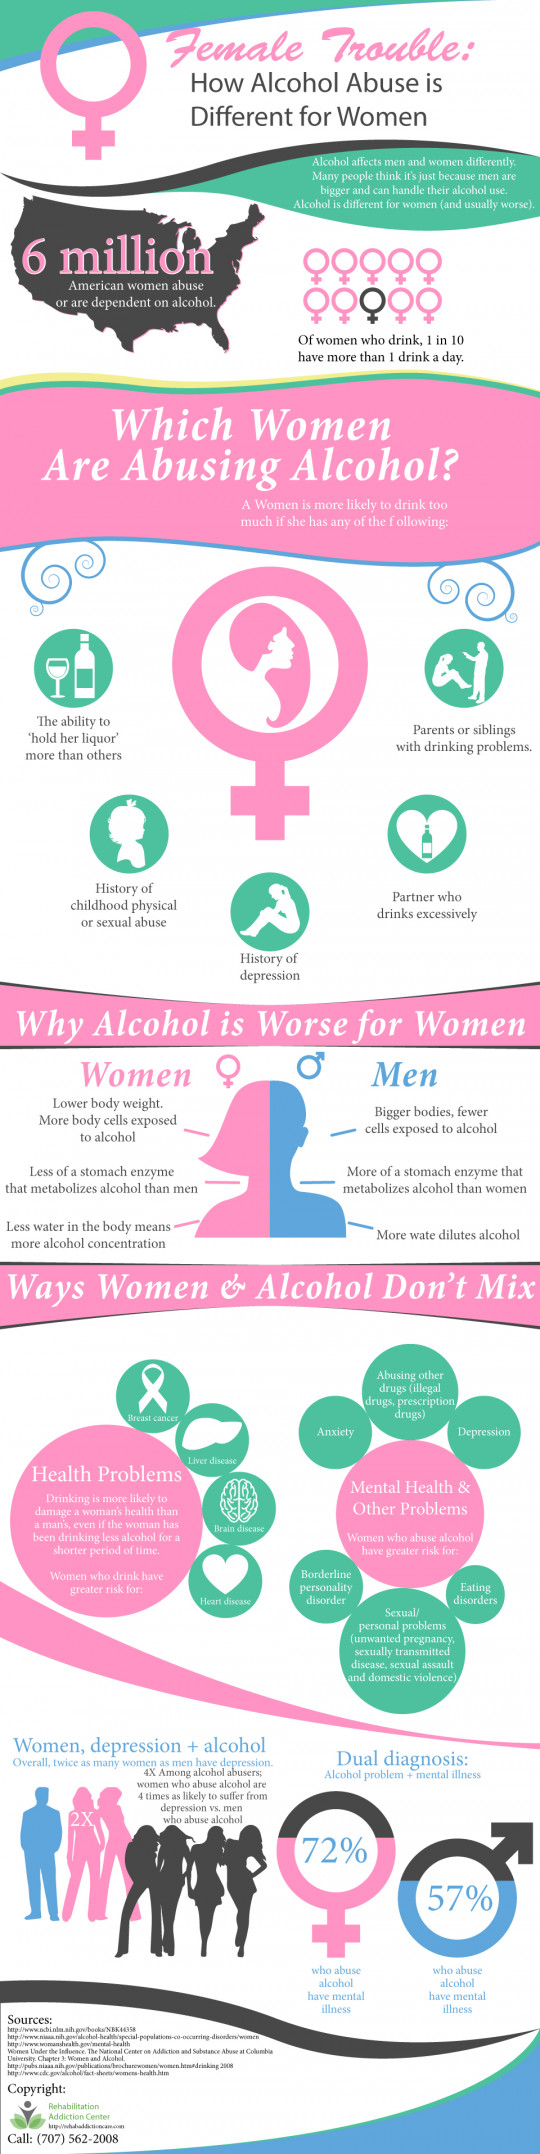 How Alcohol Abuse is Different for Women | Rehabilitation Addiction Center